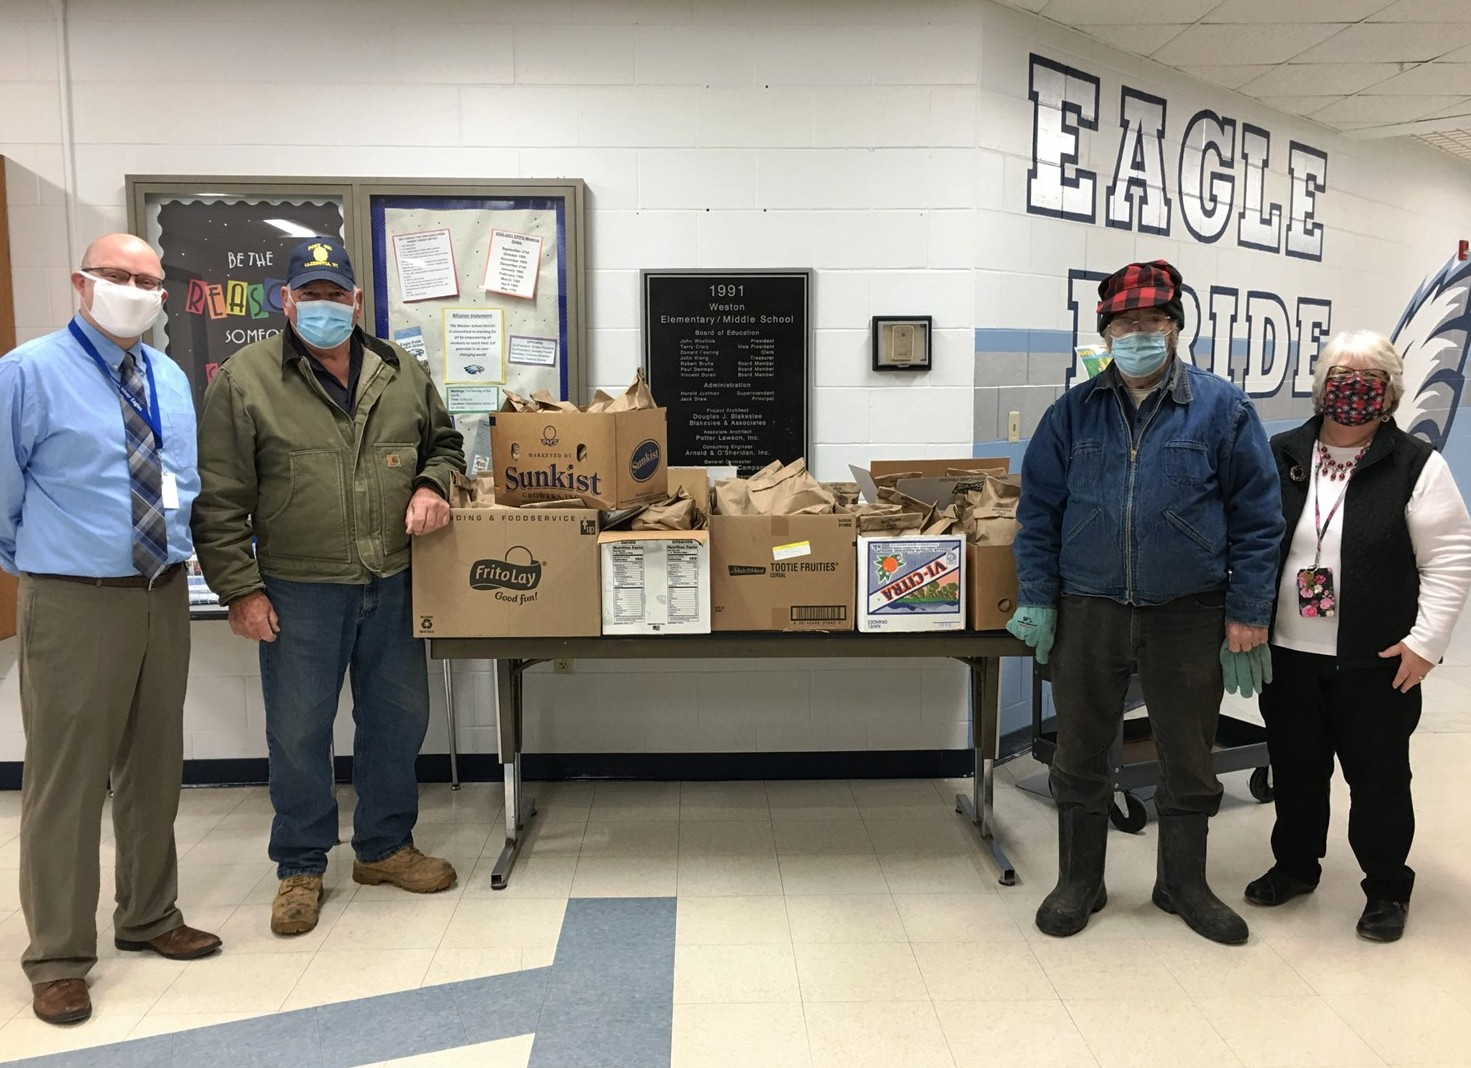 The Cazenovia American Legion once again assembled goodie bags for all Weston Elementary School students during the 2020 holidays. Normally Santa delivers these bags but his helpers did so instead due to COVID-19. Seen here are, from left, Elementary Principal Jason Meyer, Legion representatives Jim Deitelhoff and Wayne Morse and Weston Community Outreach Coordinator Sue Louis. (Submitted photo)